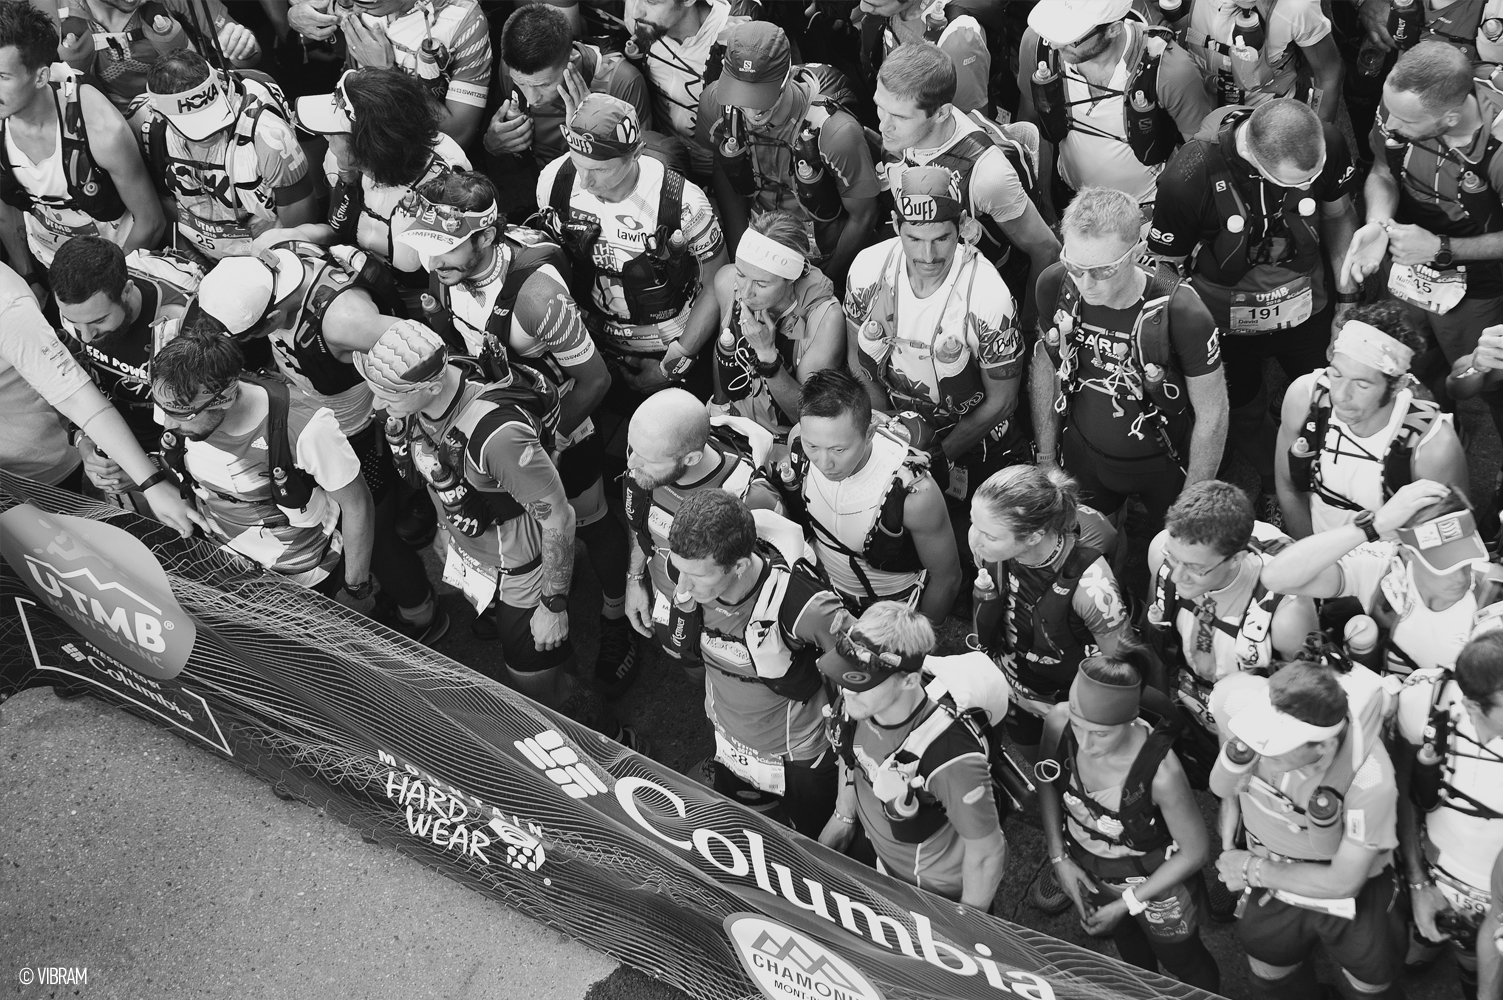 LET'S GET BACK TO UTMB 2016 – INTERVIEW WITH GEDIMINAS GRINIUS